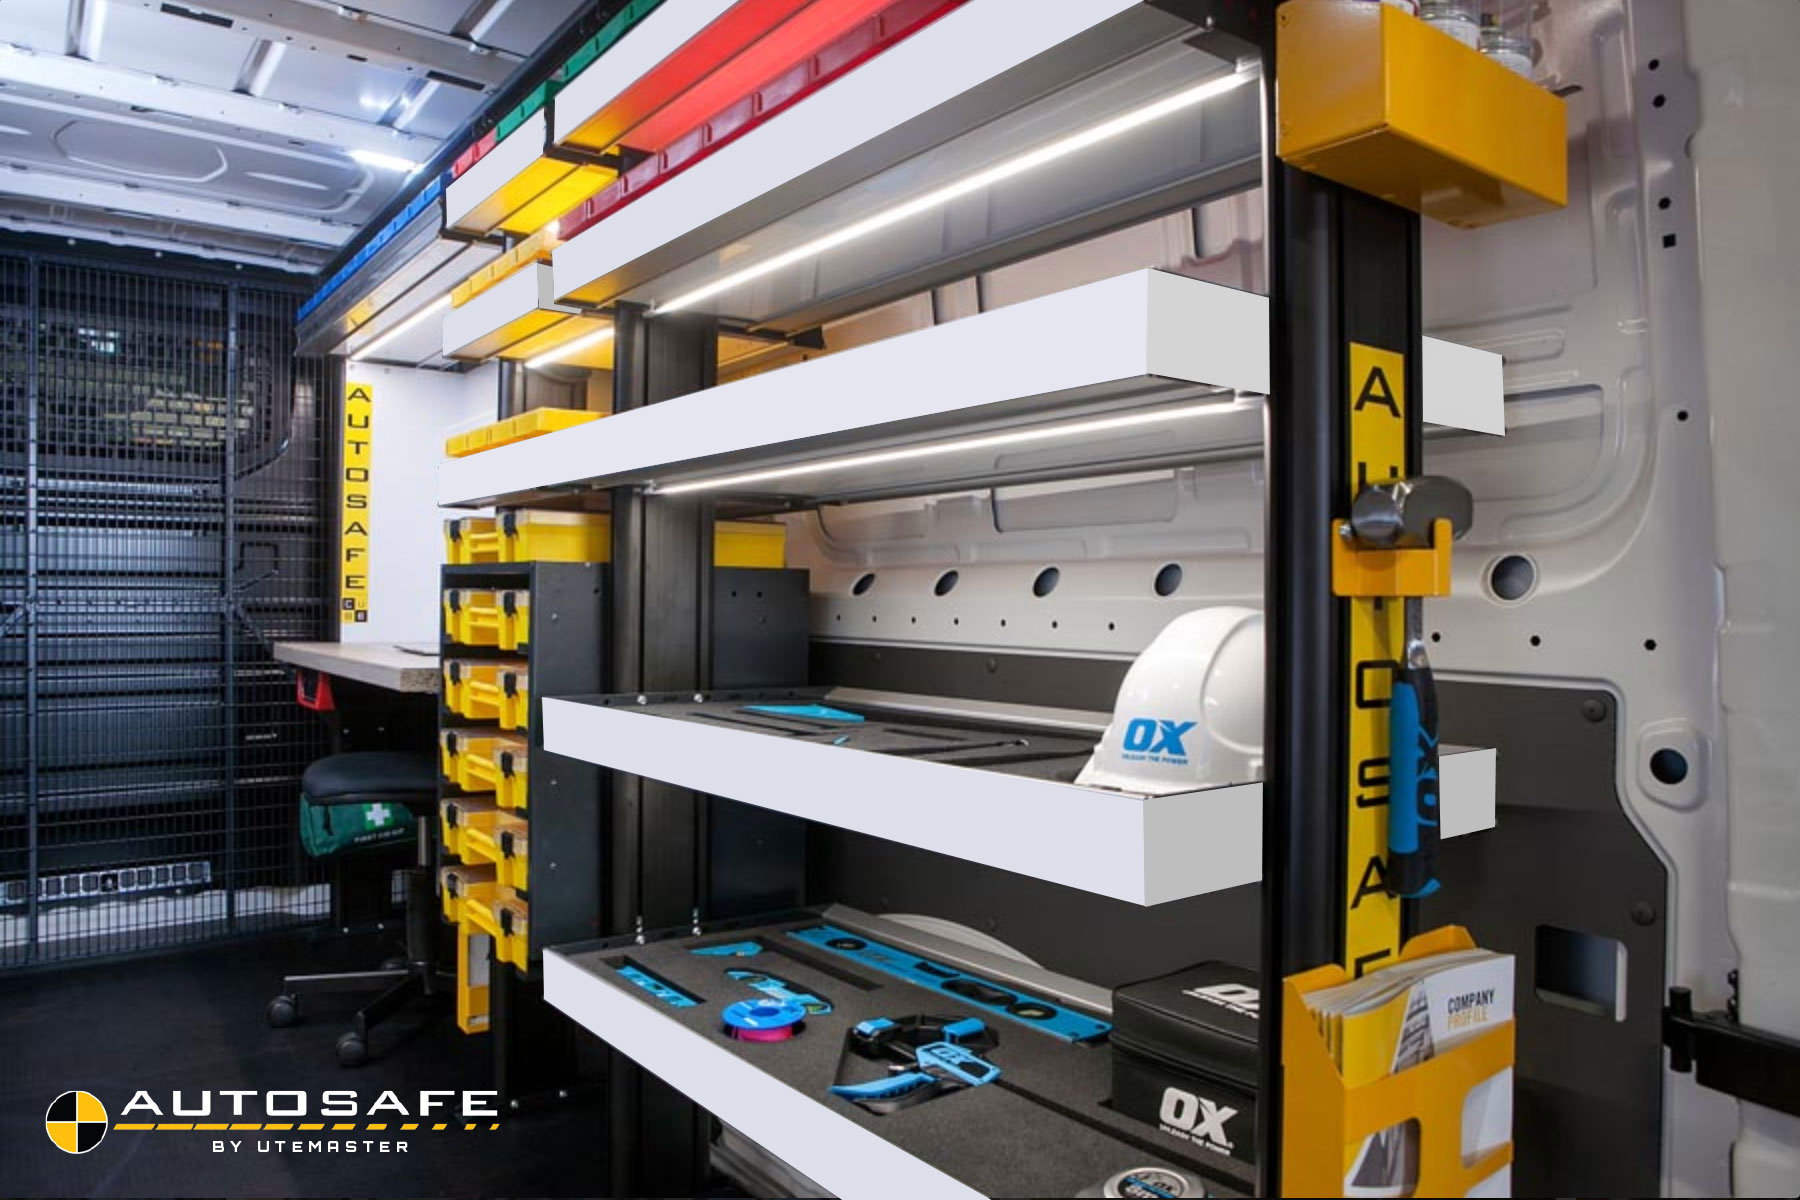 Autosafe By Utemaster Van Shelving Made Easy Commercial Fleets